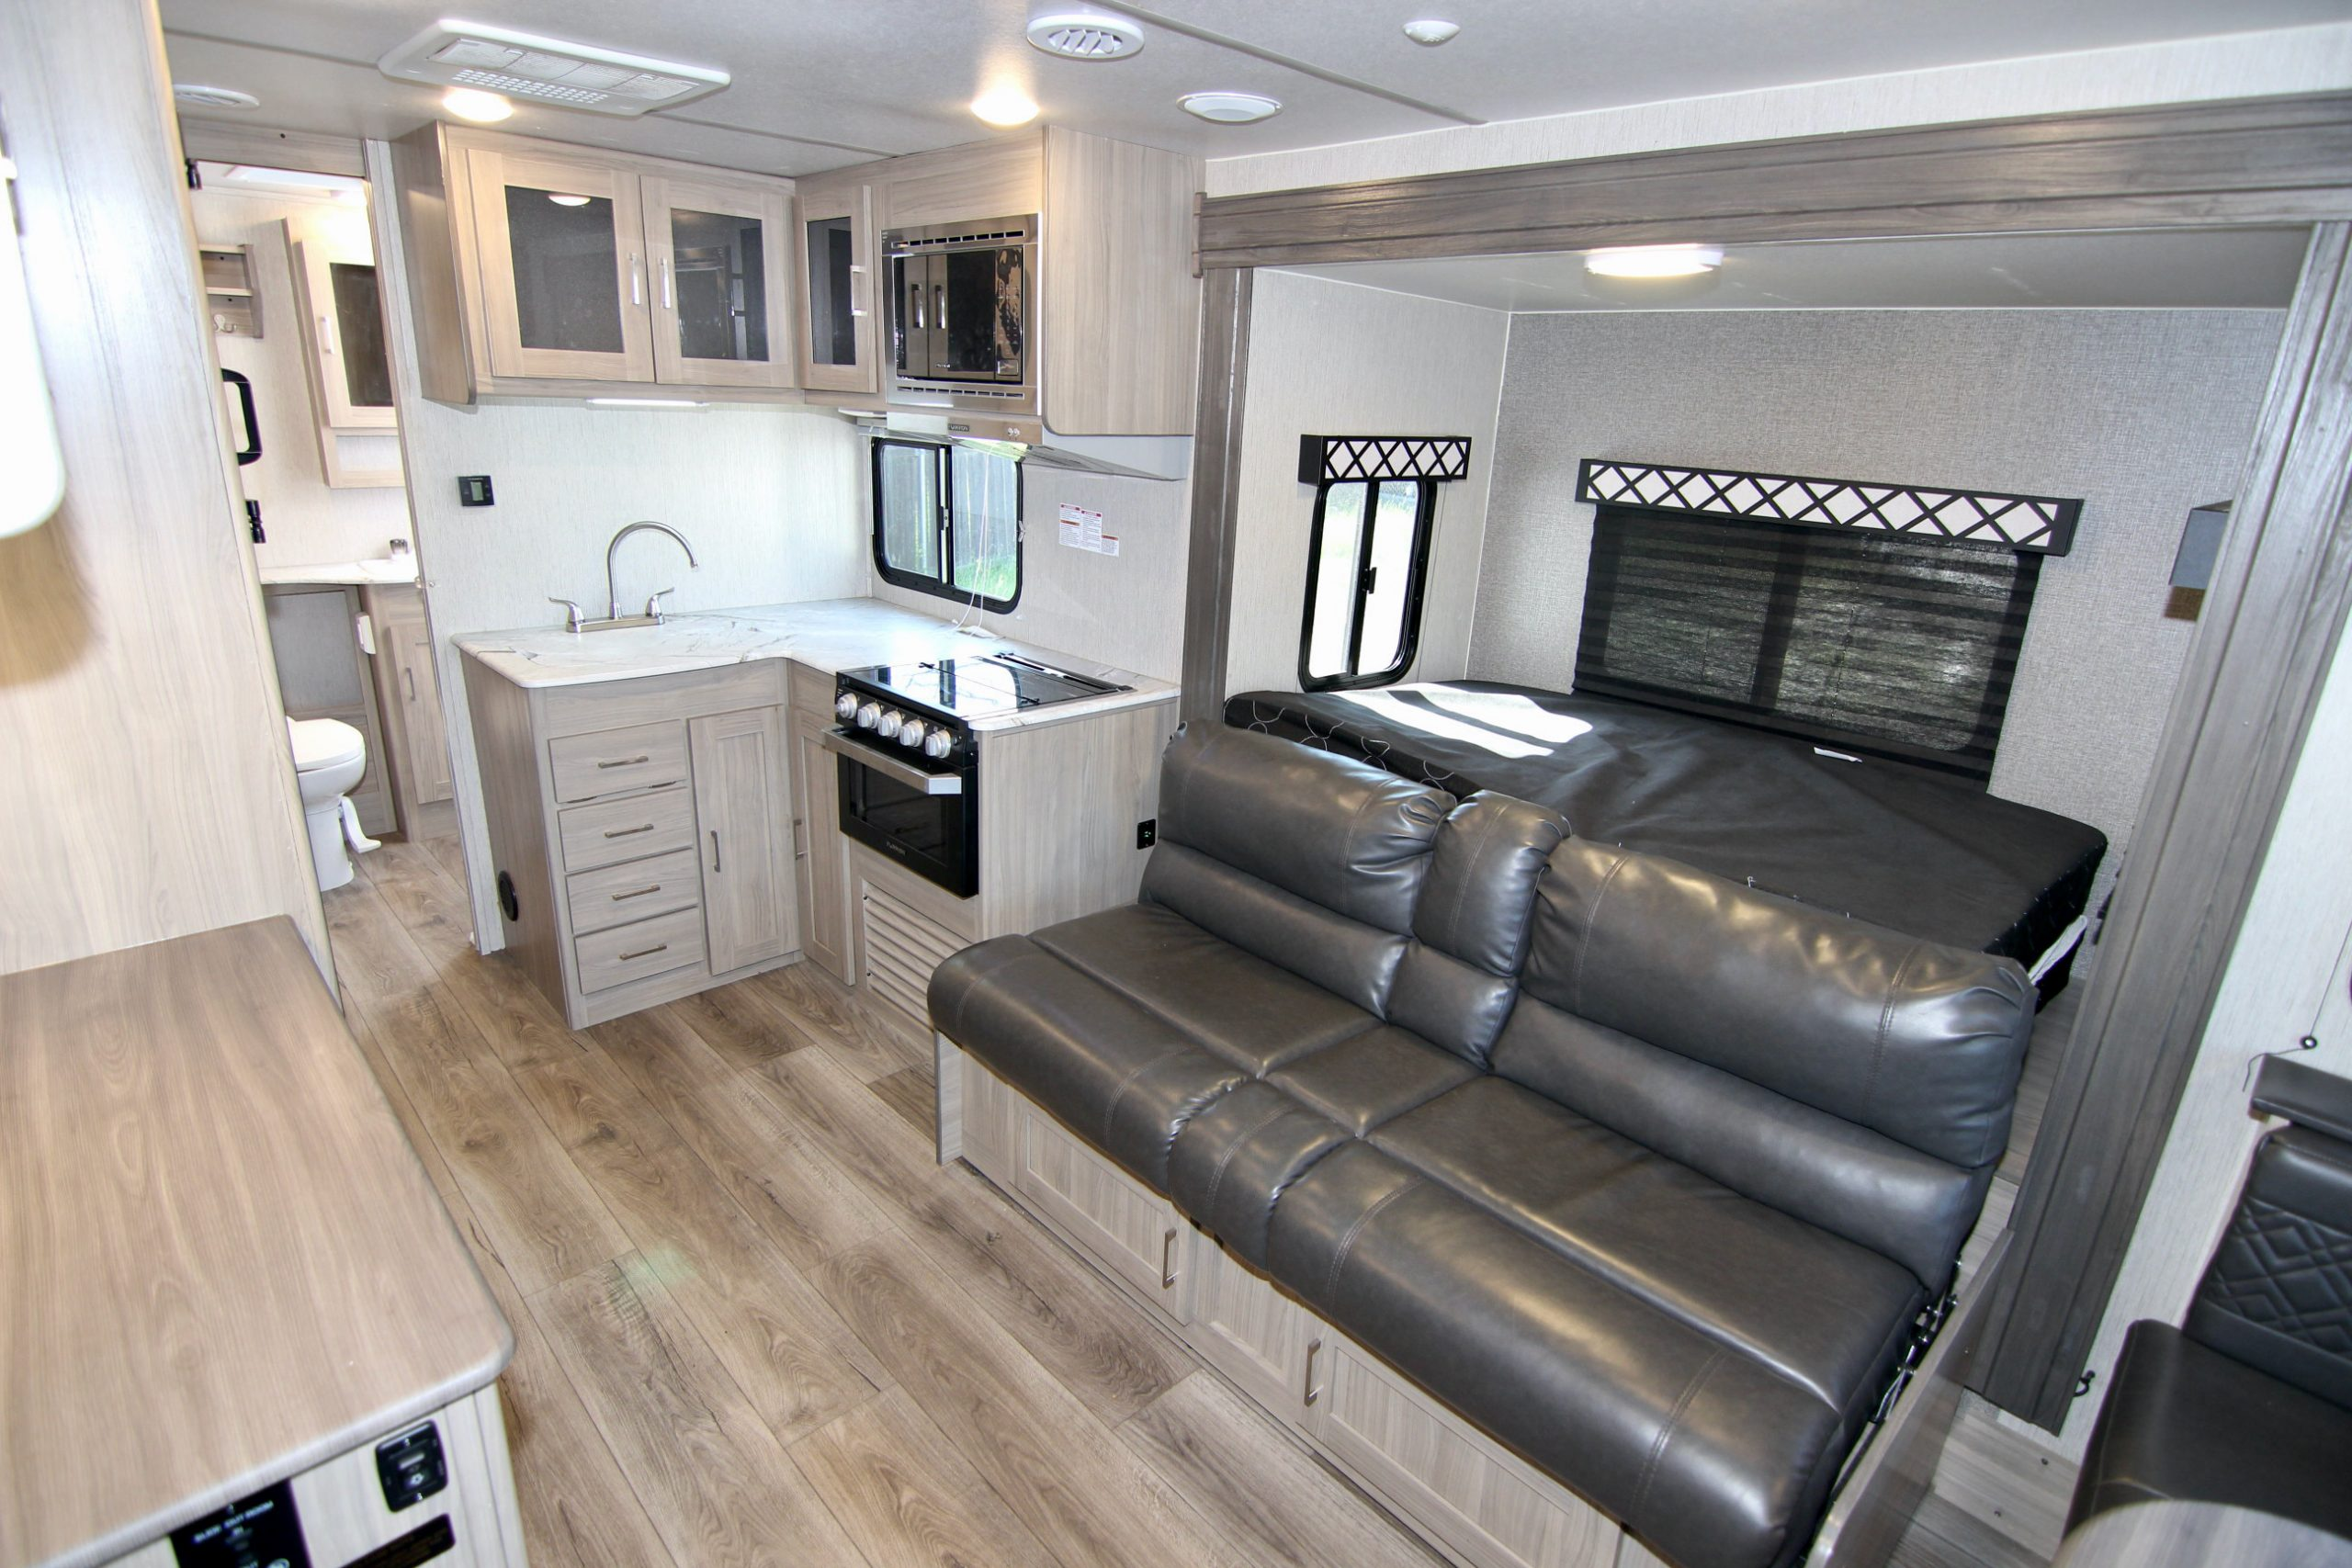 2020 Freedom Express 195RBS, Travel Trailer, Lite Weight, Slide-Out 😊 full